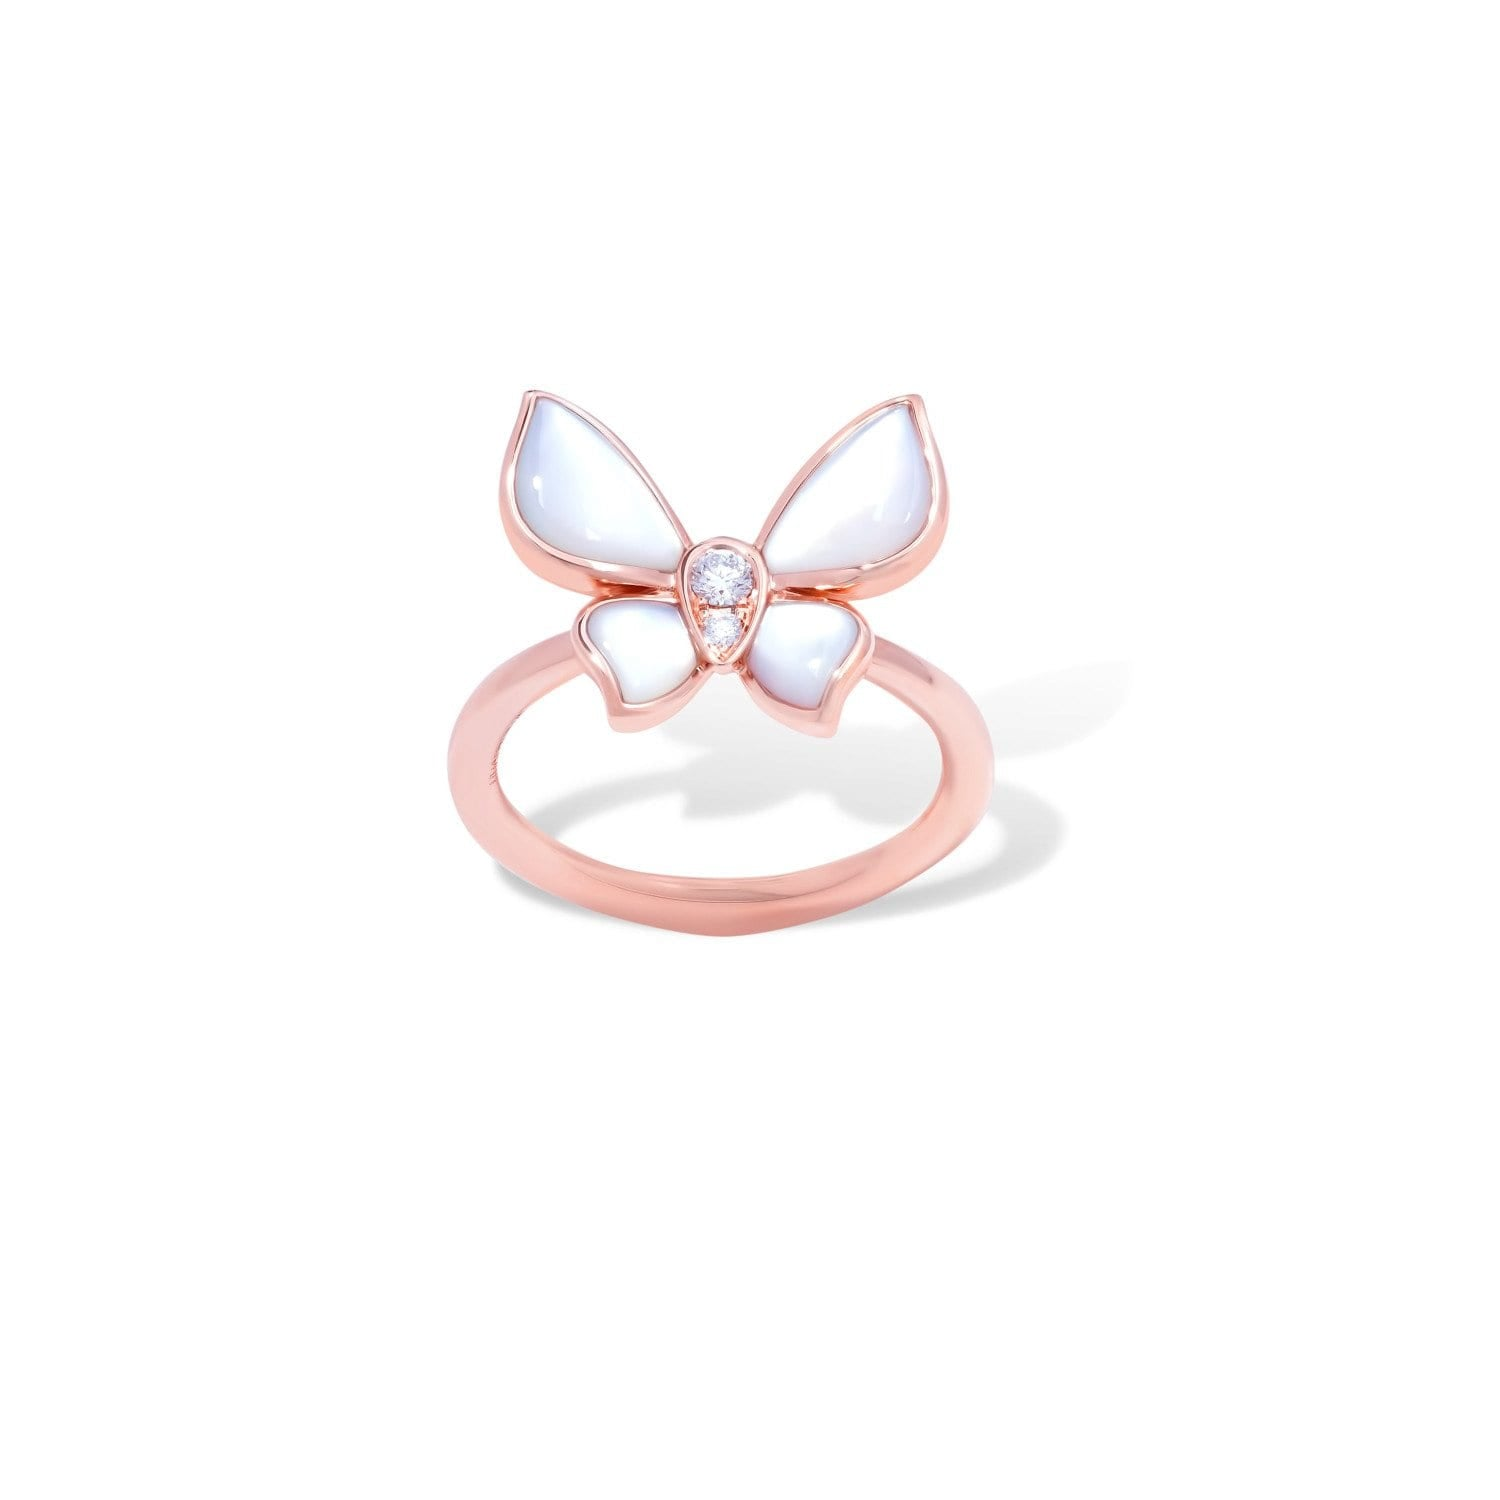 DAY&NIGHT Ring - STENZHORN JEWELLERY